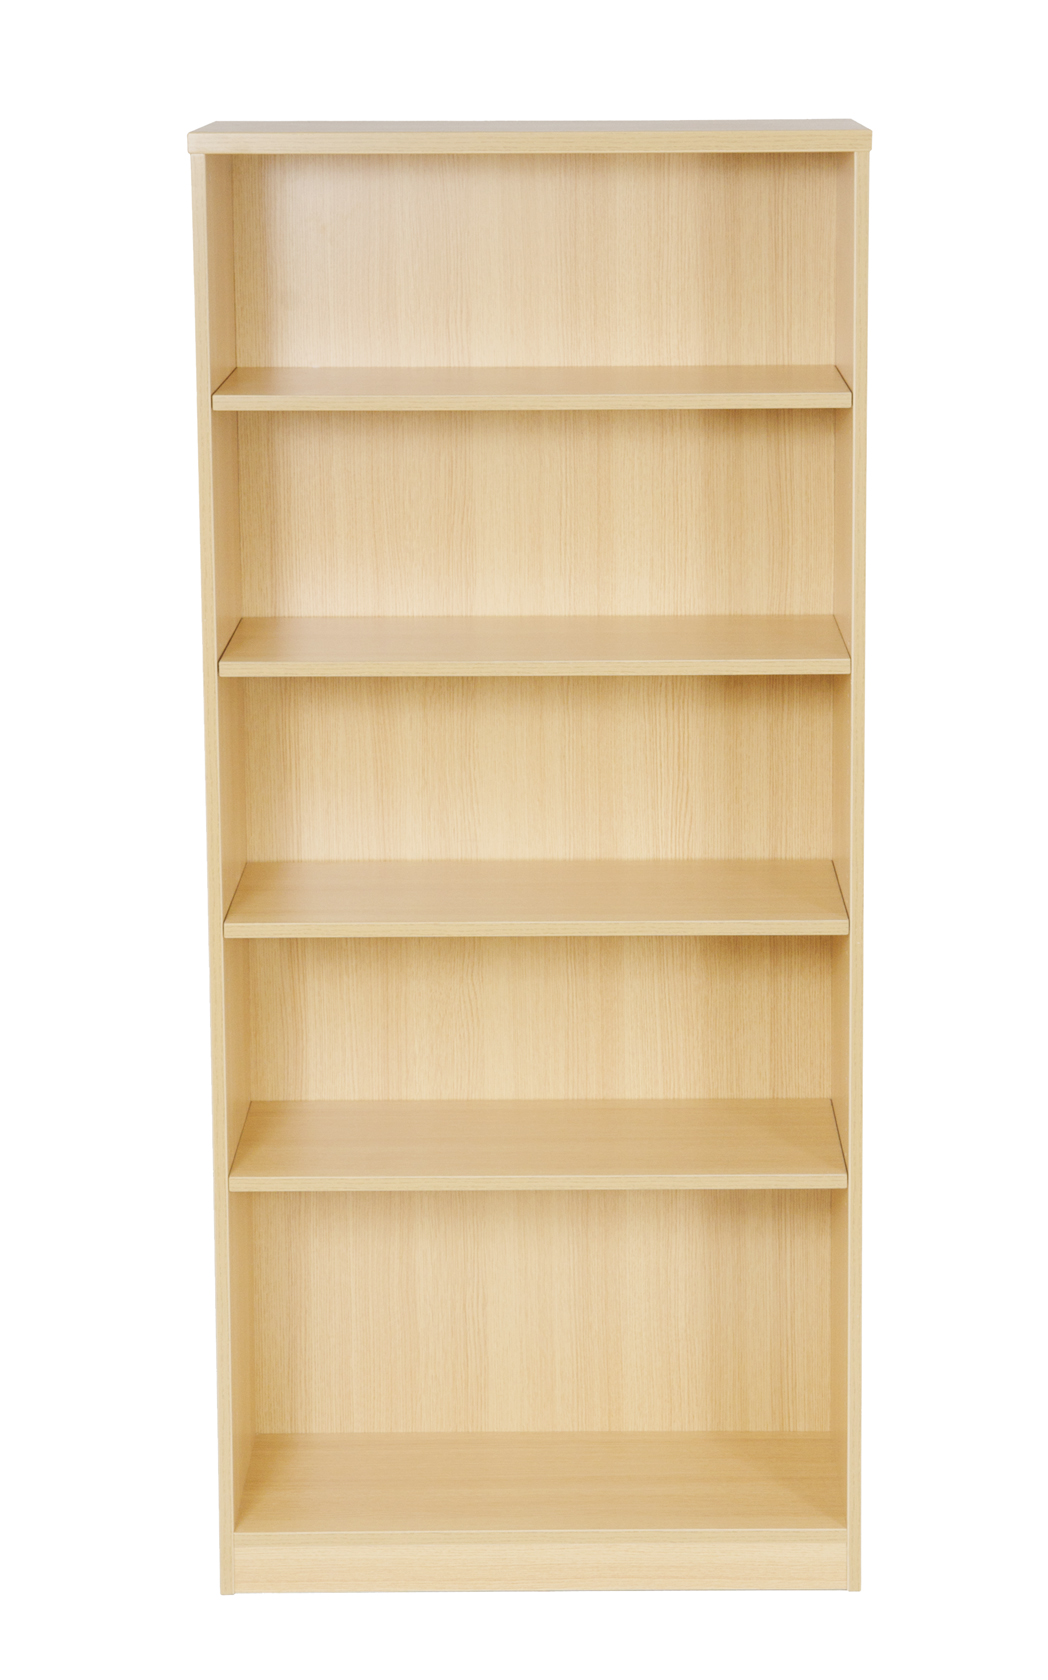 cecfaf09636 Tall Office Bookcase With 4 Shelves